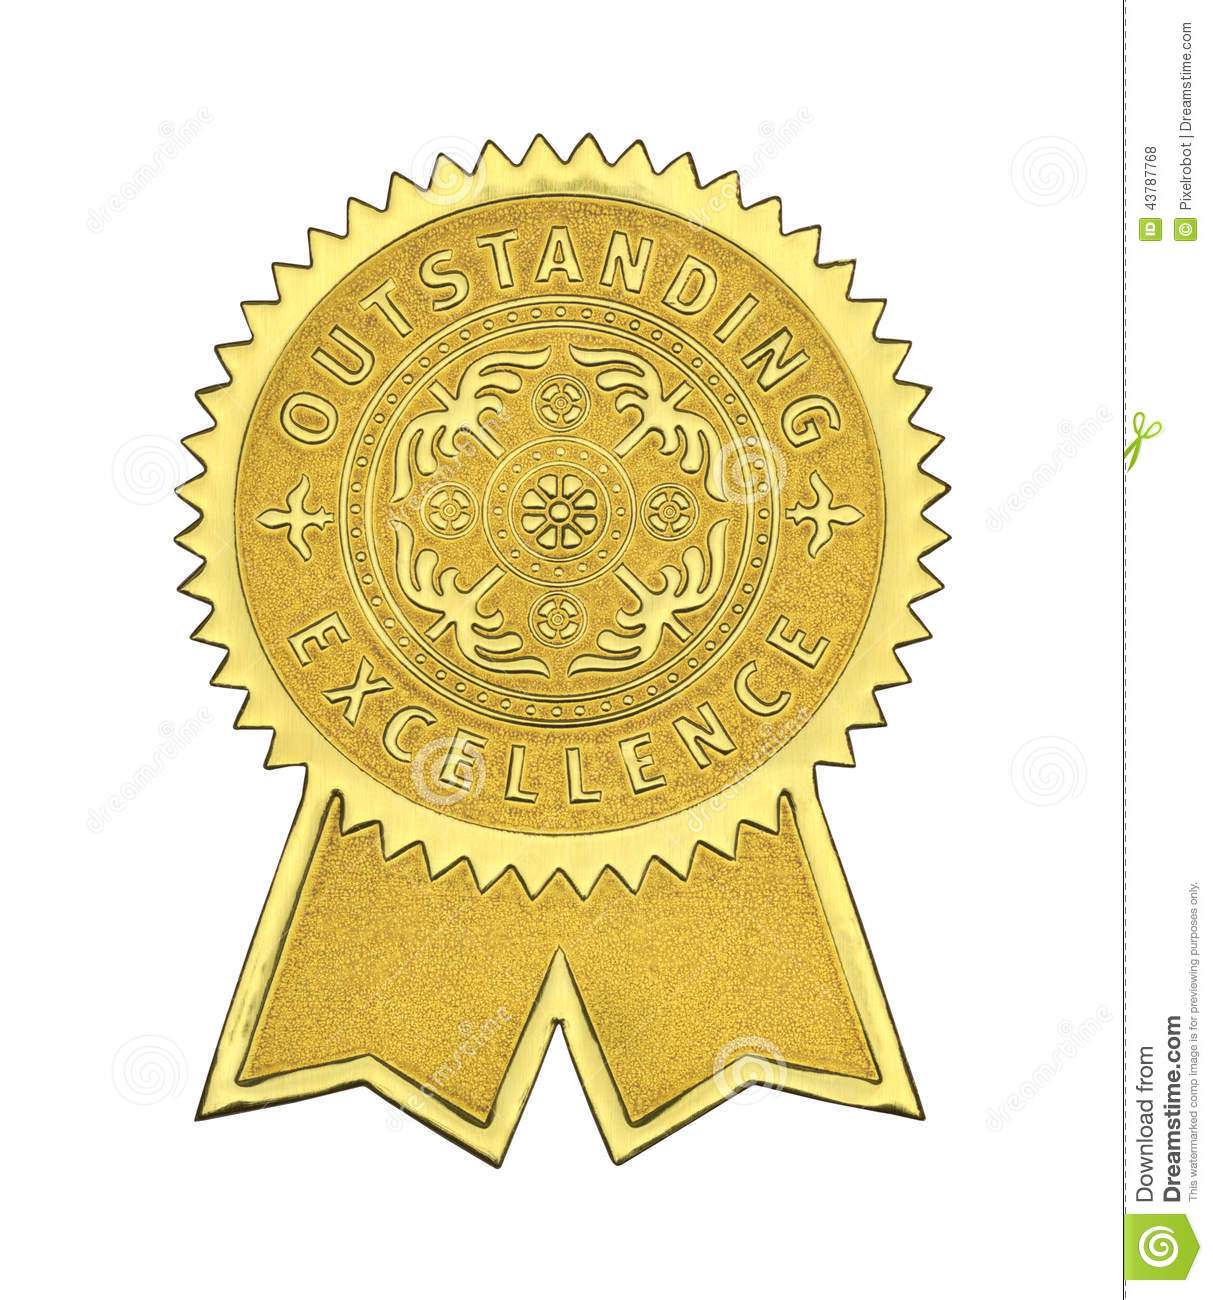 outstanding excellence seal stock photo image 43787768 seal clip art free seal clipart for kids